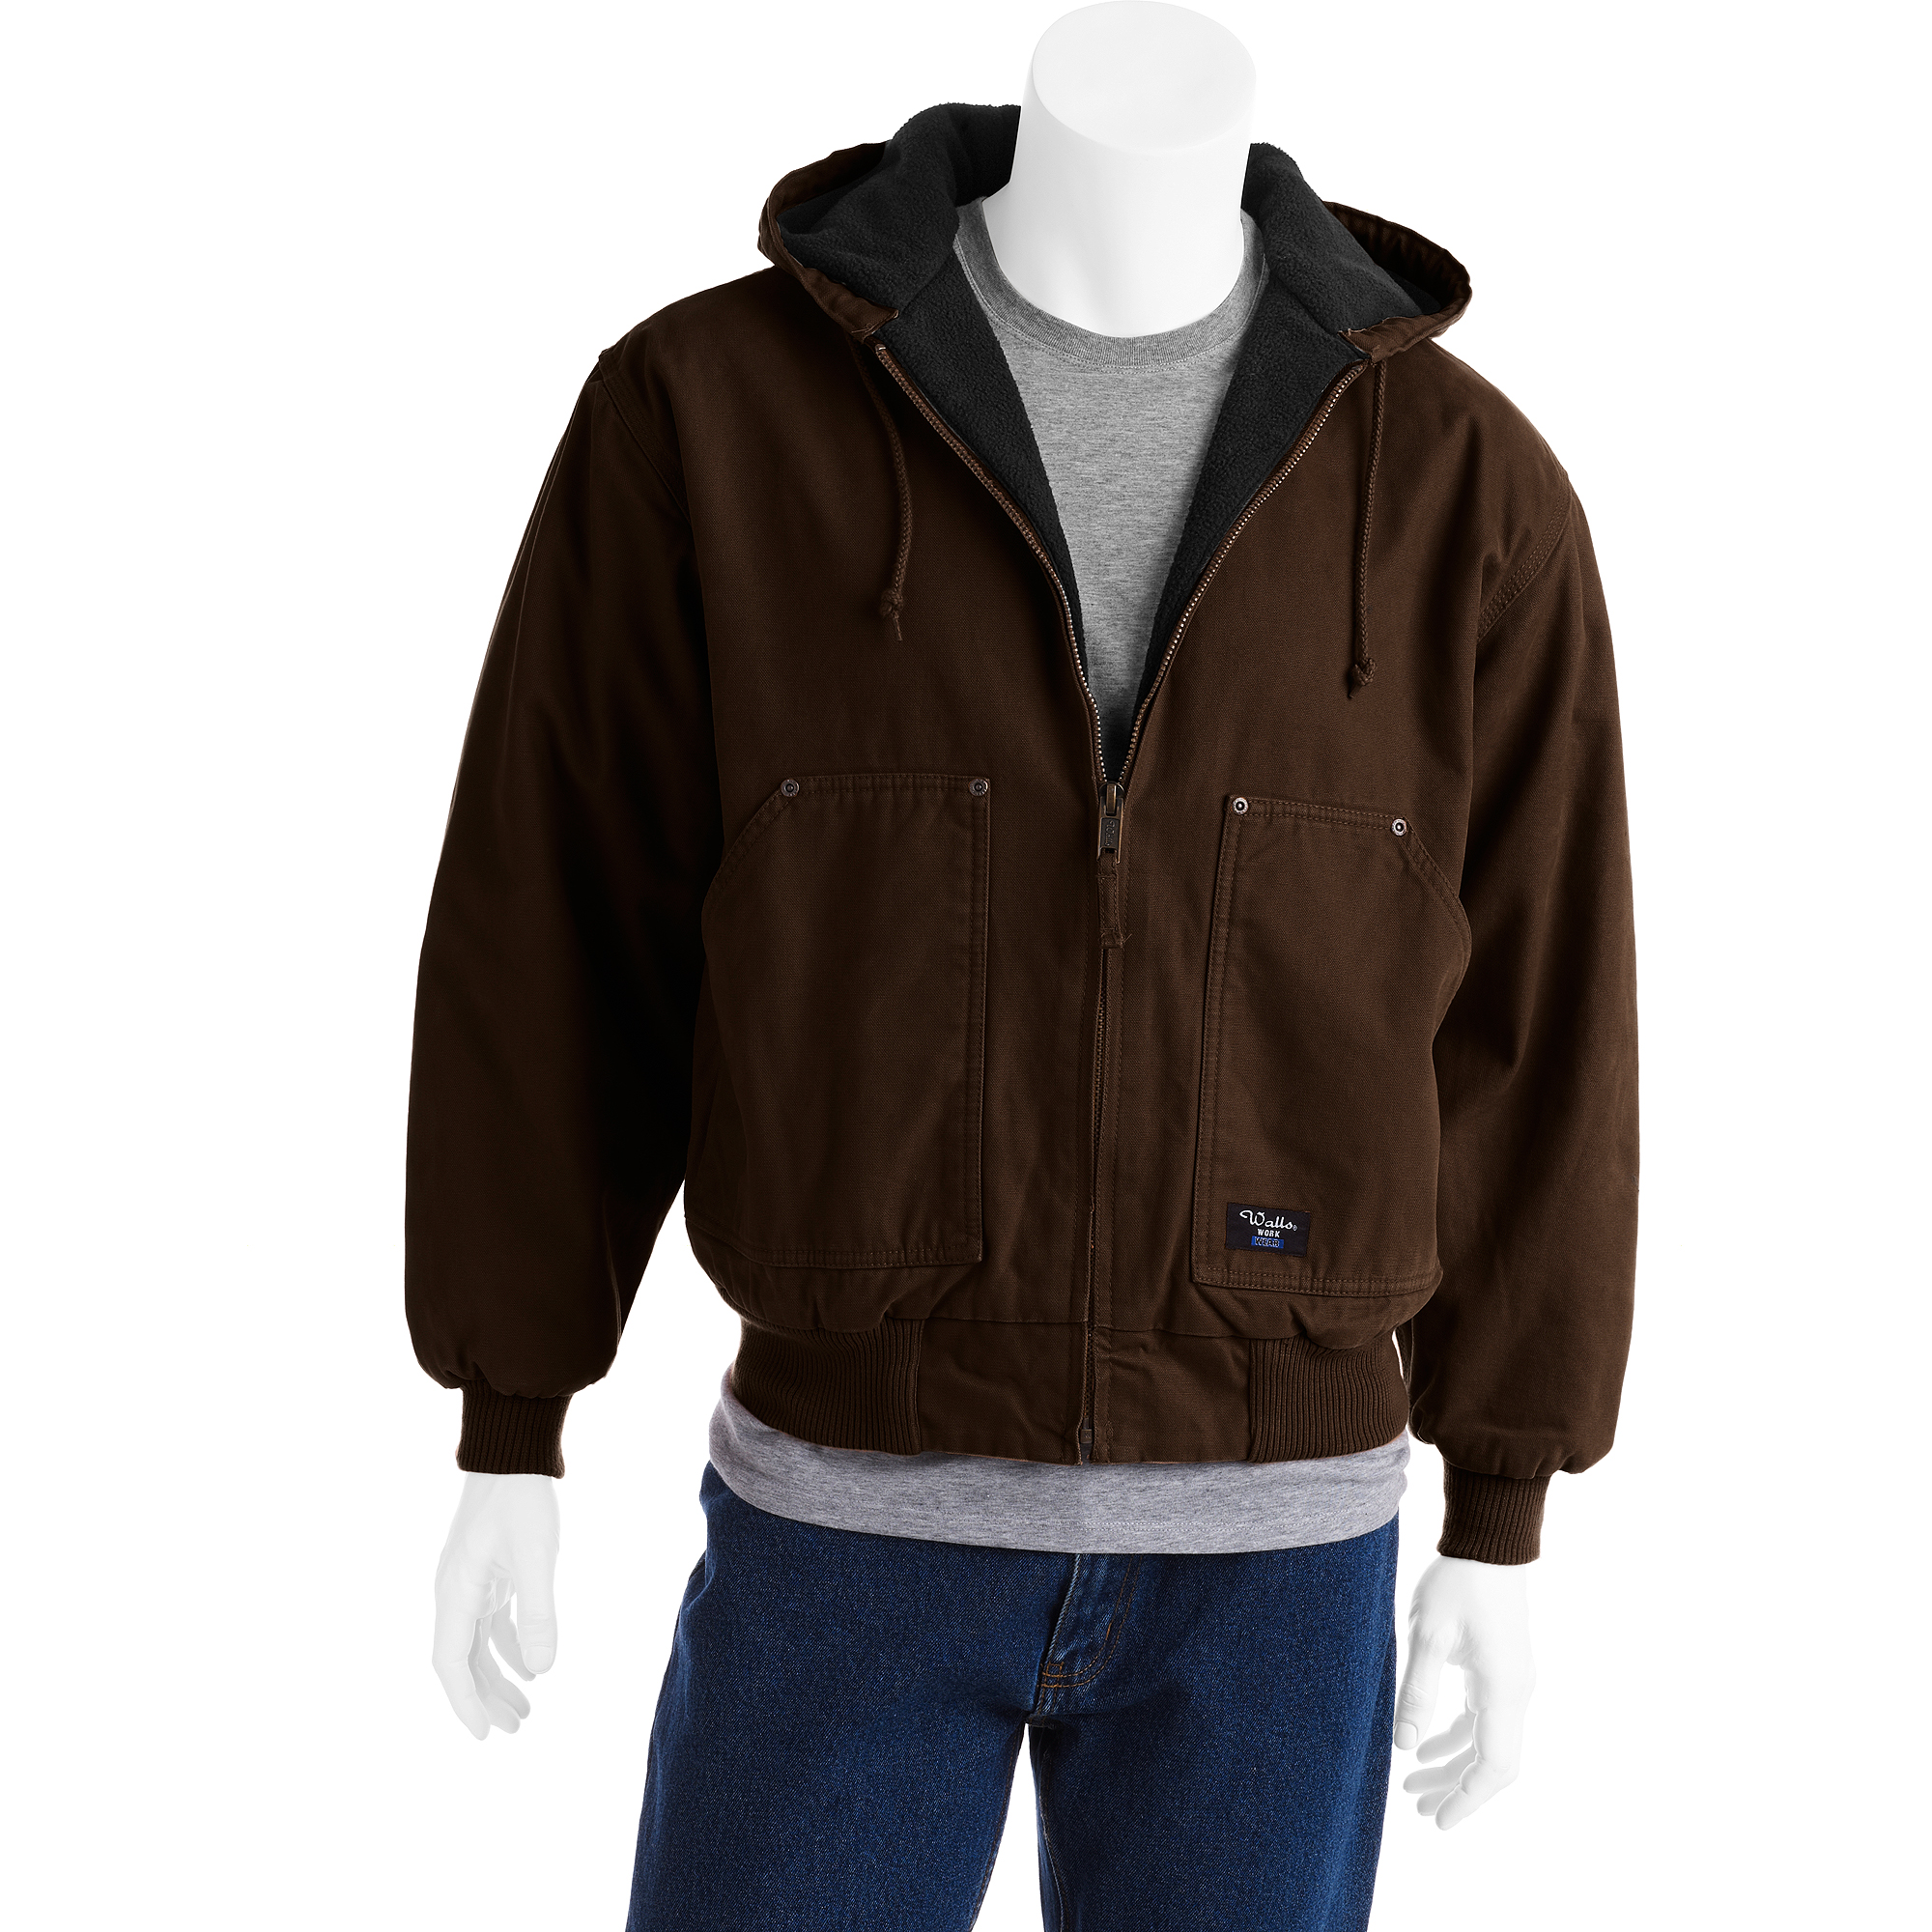 Walls - Big Men's Insulated Hooded Jacket, Size 2XL